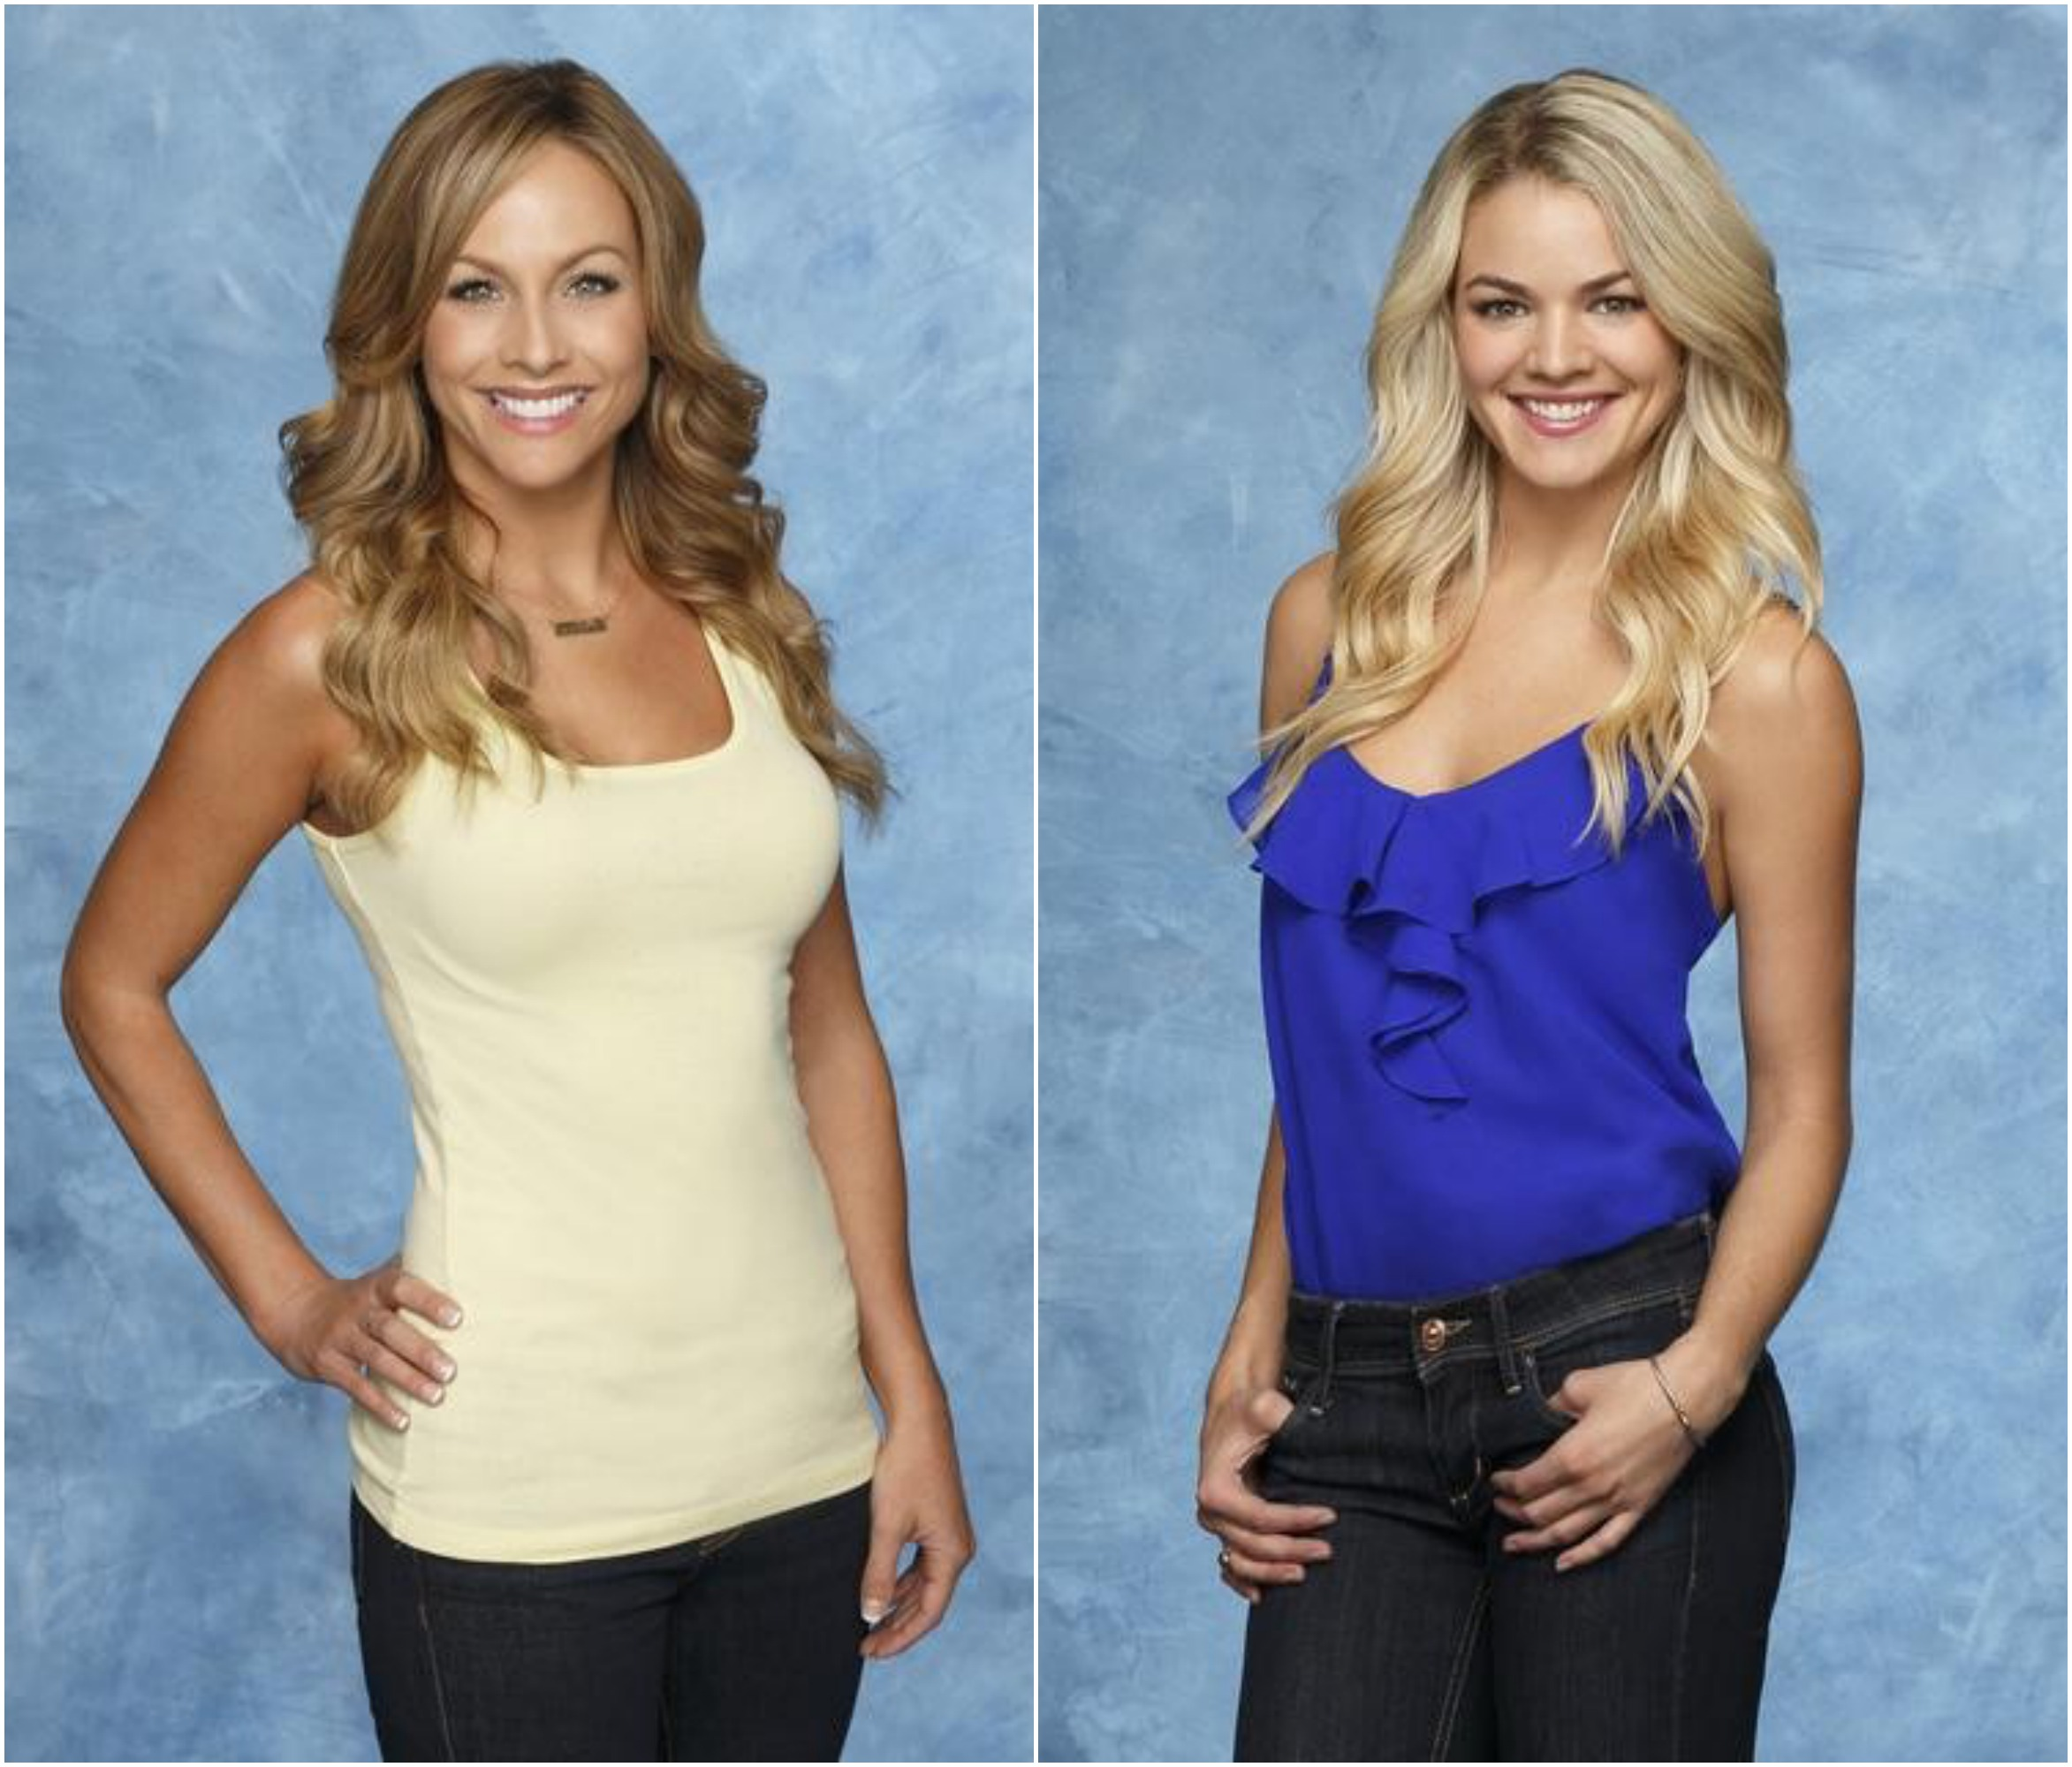 Who Won The Bachelor 2014 Tonight? Season 18